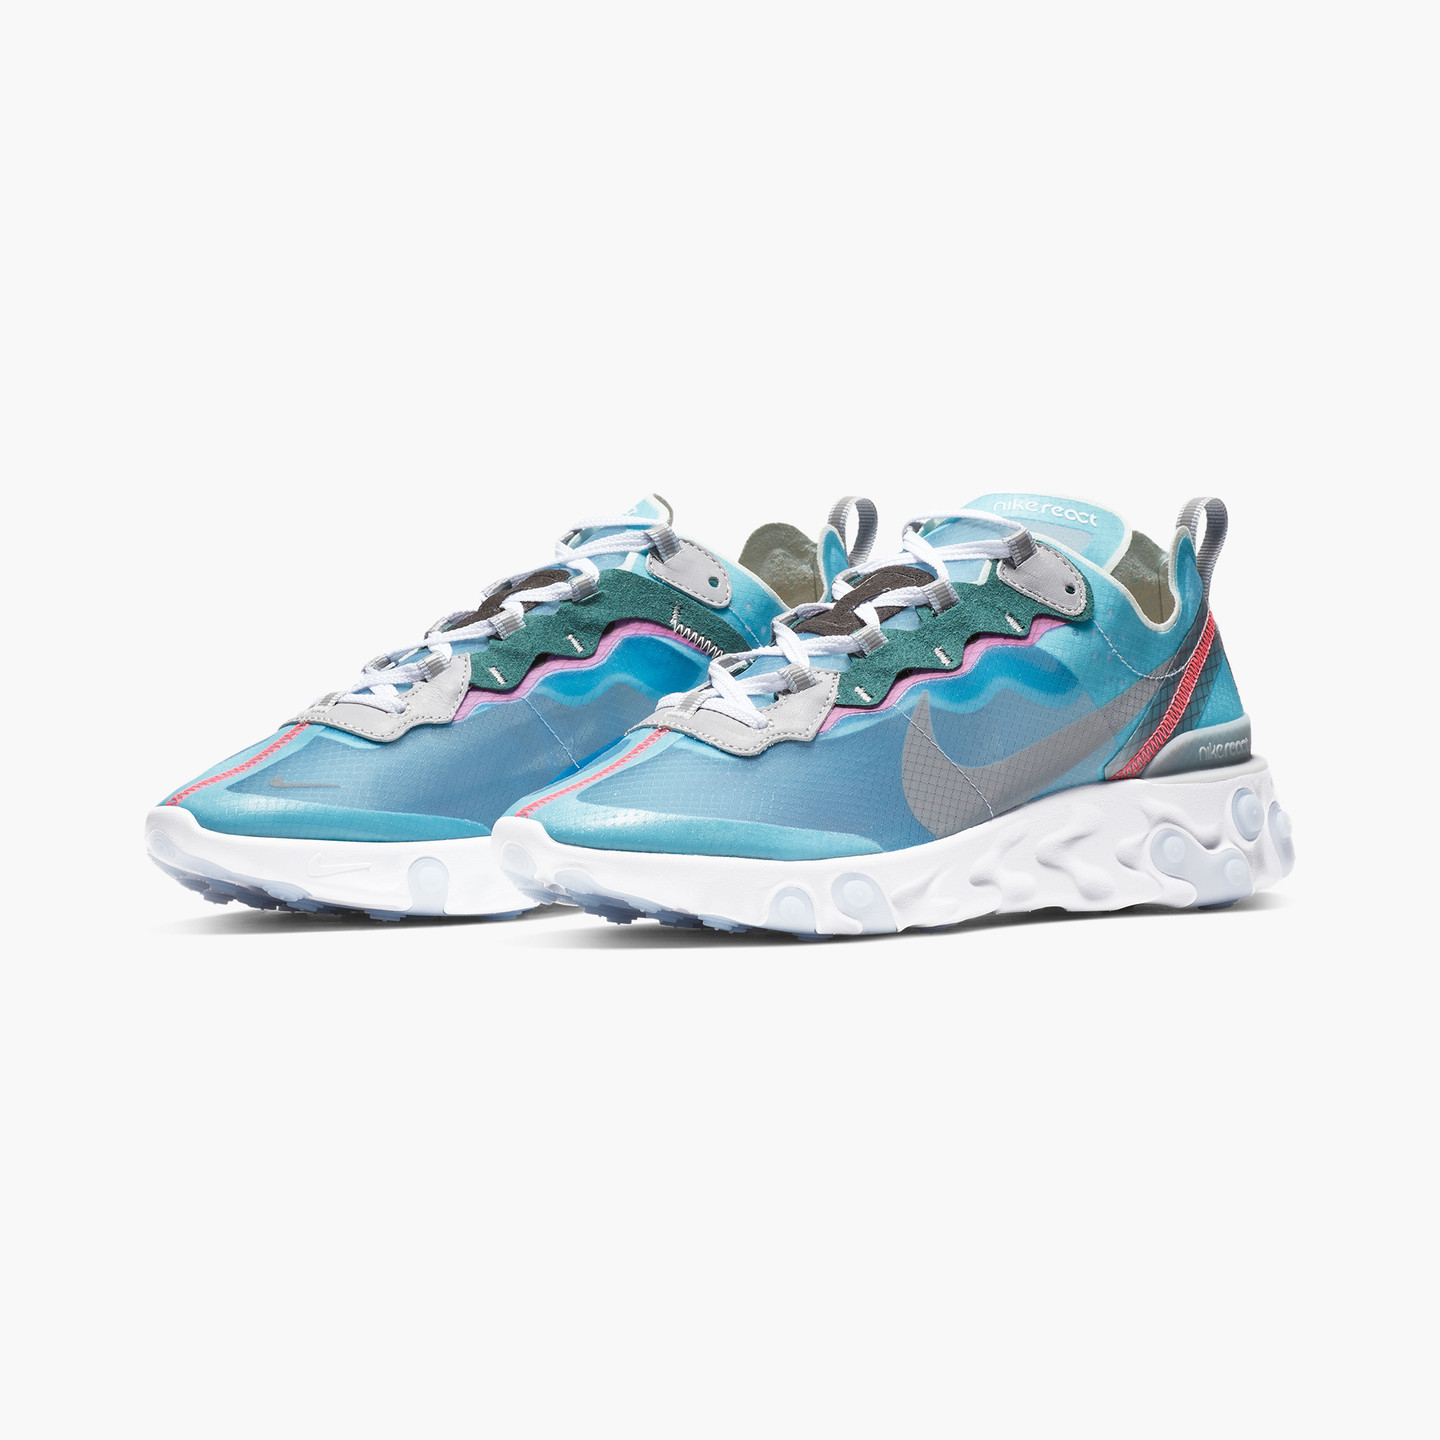 Nike React Element 87 Royal Tint / Black / Wolf Grey / Solar Red AQ1090-400